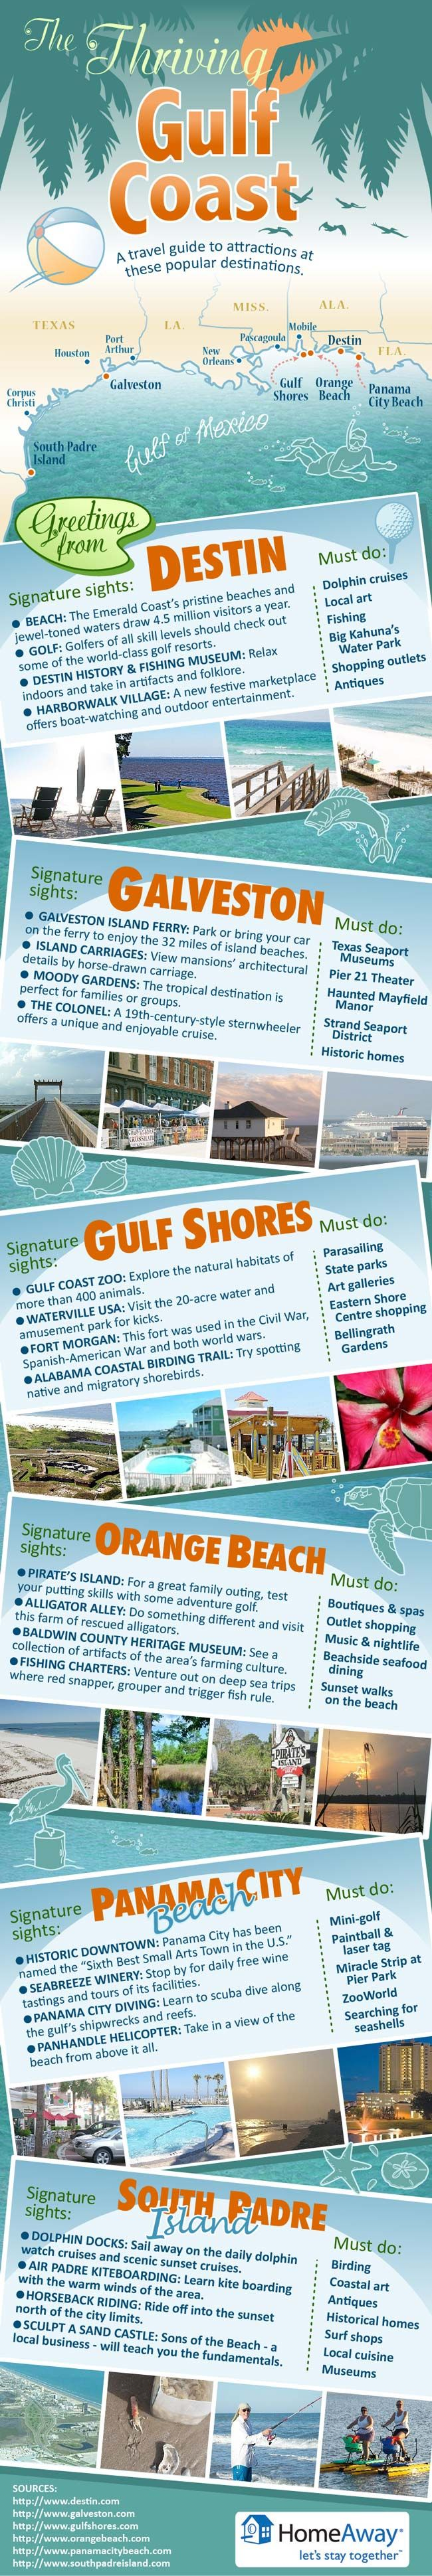 The thriving Gulf Coast - check out these pristine beach destinations ready to welcome you!